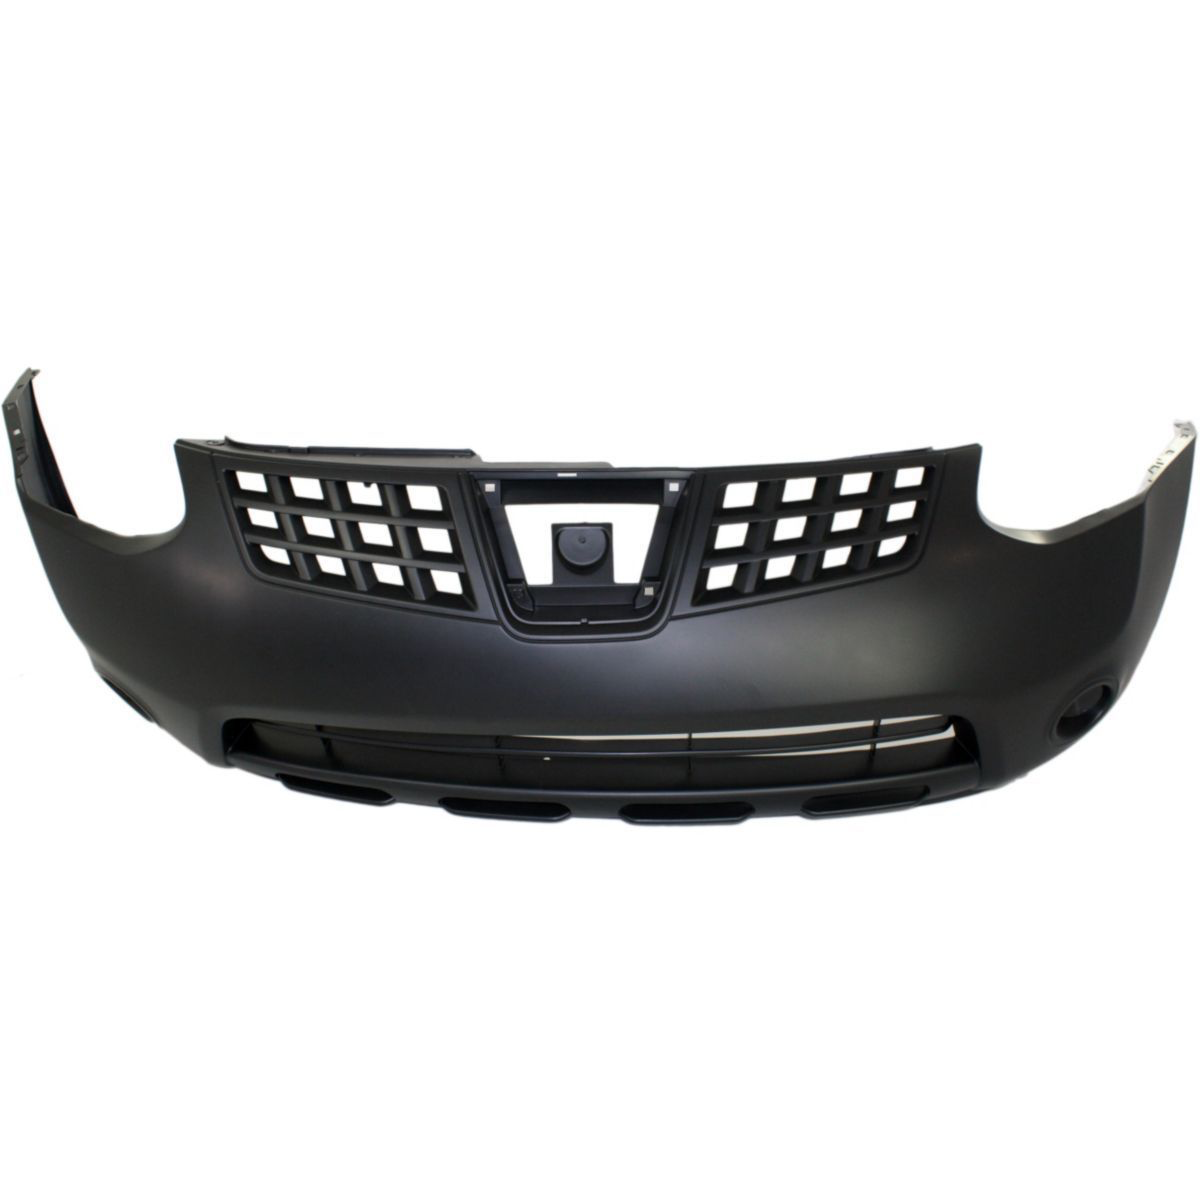 2008-2010 NISSAN ROGUE Front Bumper Cover S|SL Painted to Match